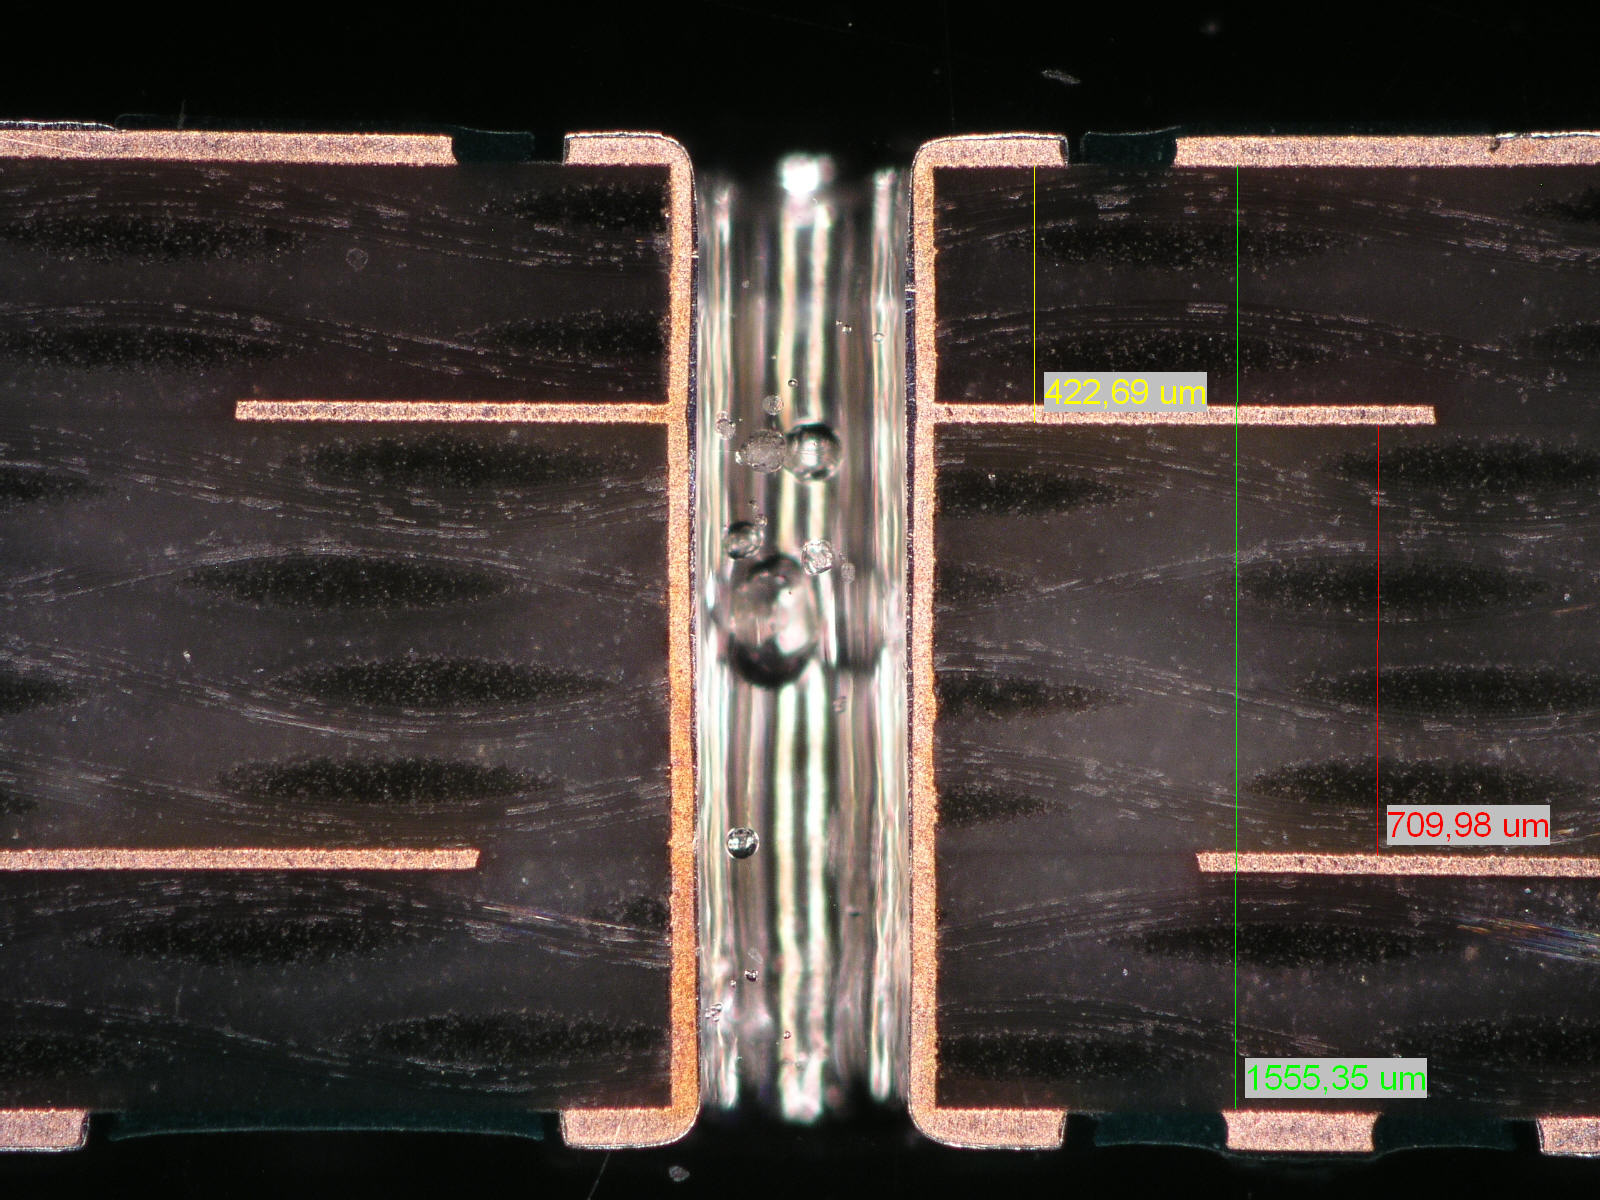 How Do We Assure The Quality Of Your Pcb Part 3 Eurocircuits Printed Circuit Board Multi Layers Immerison Gold Next Picture Shows Same As Last One But When Measure Registration Hole To Inner Layer